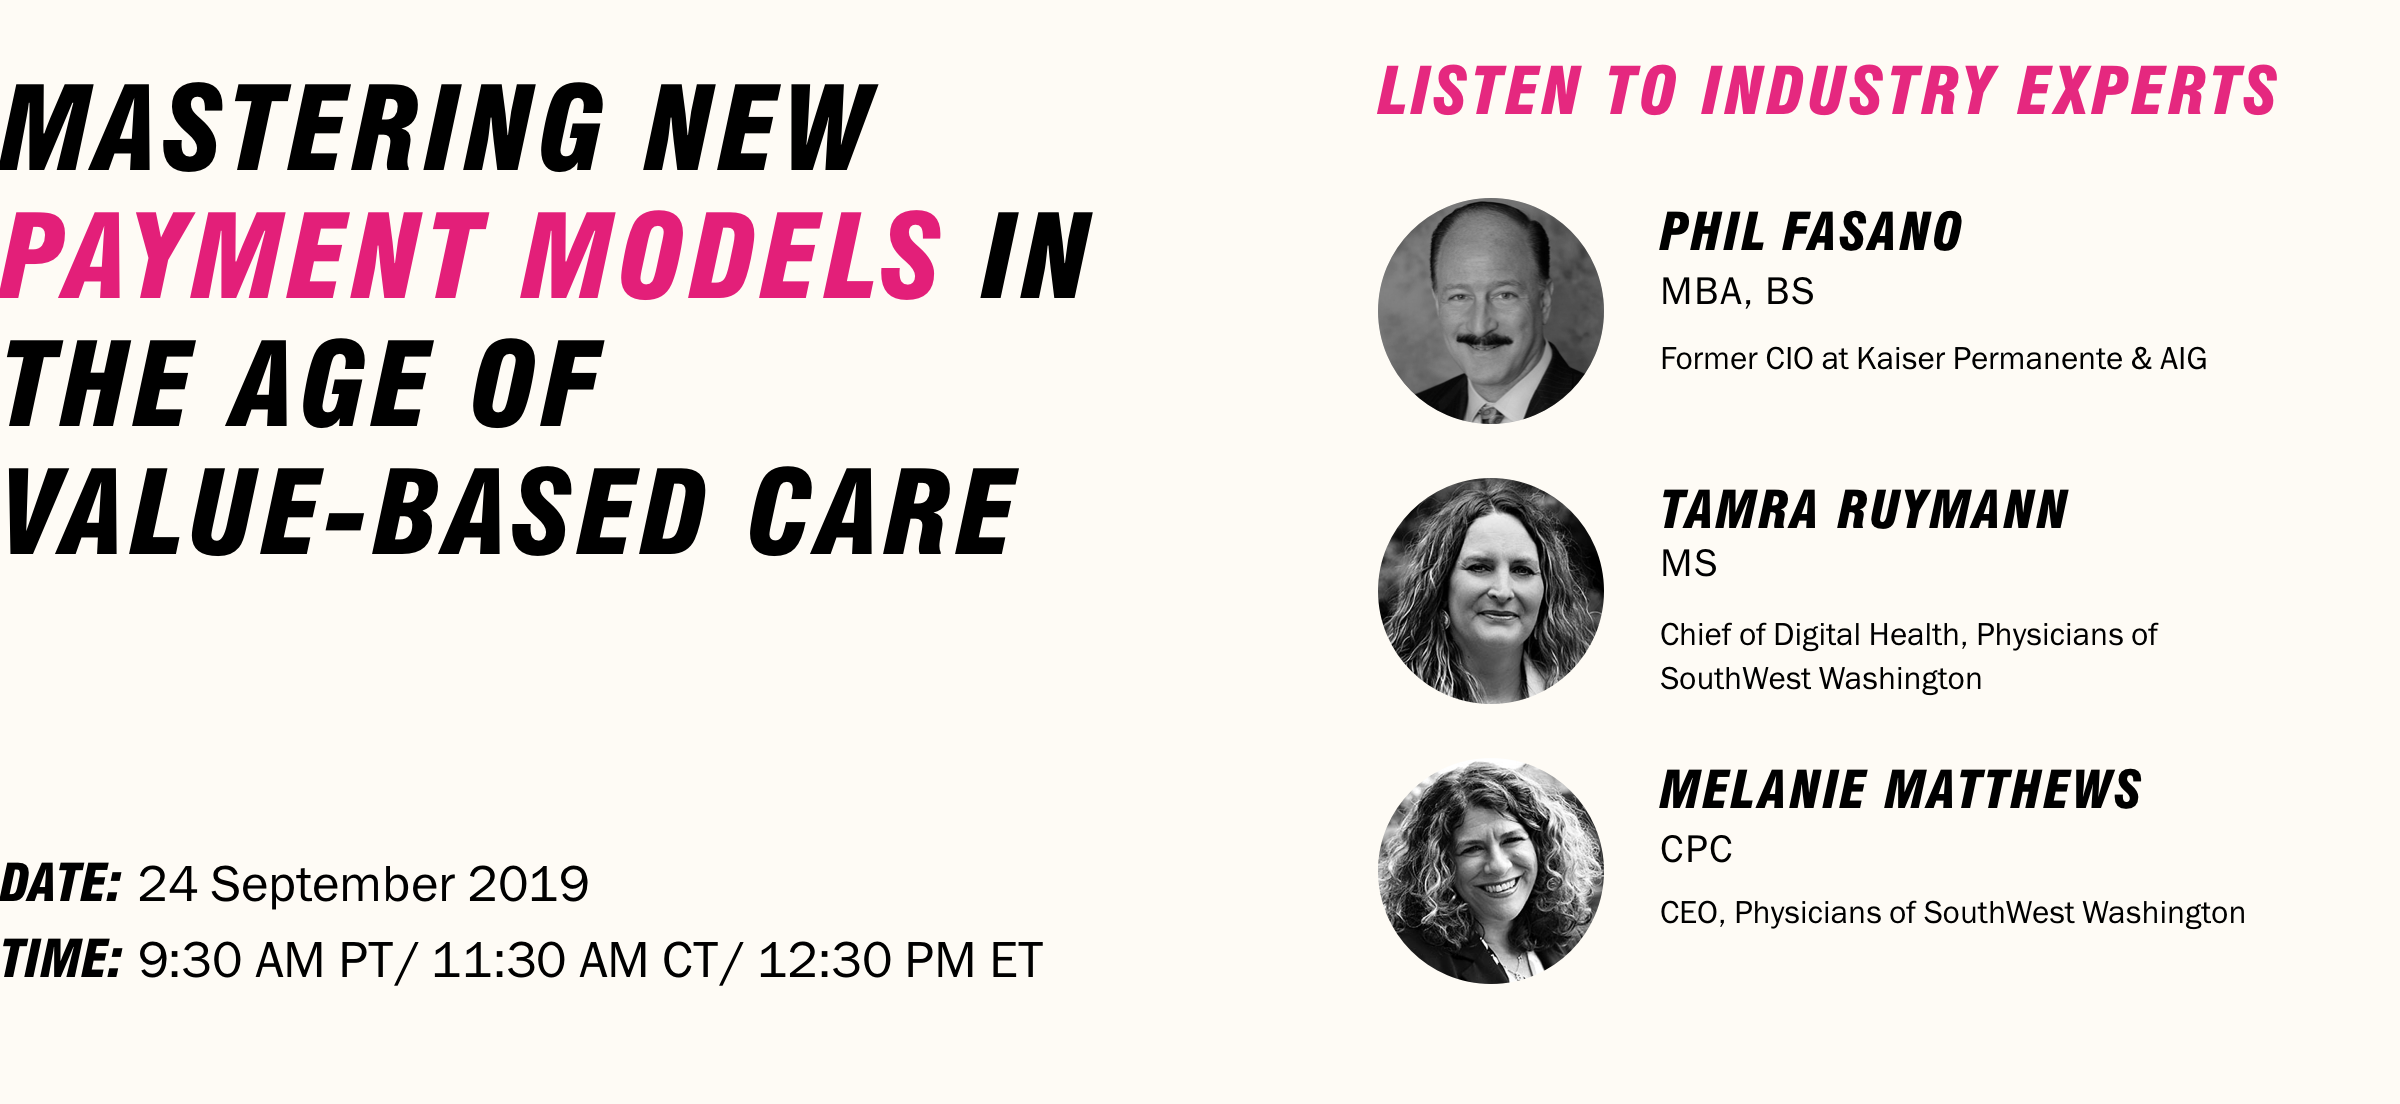 Mastering New Payment Models in the Age of Value-Based Care